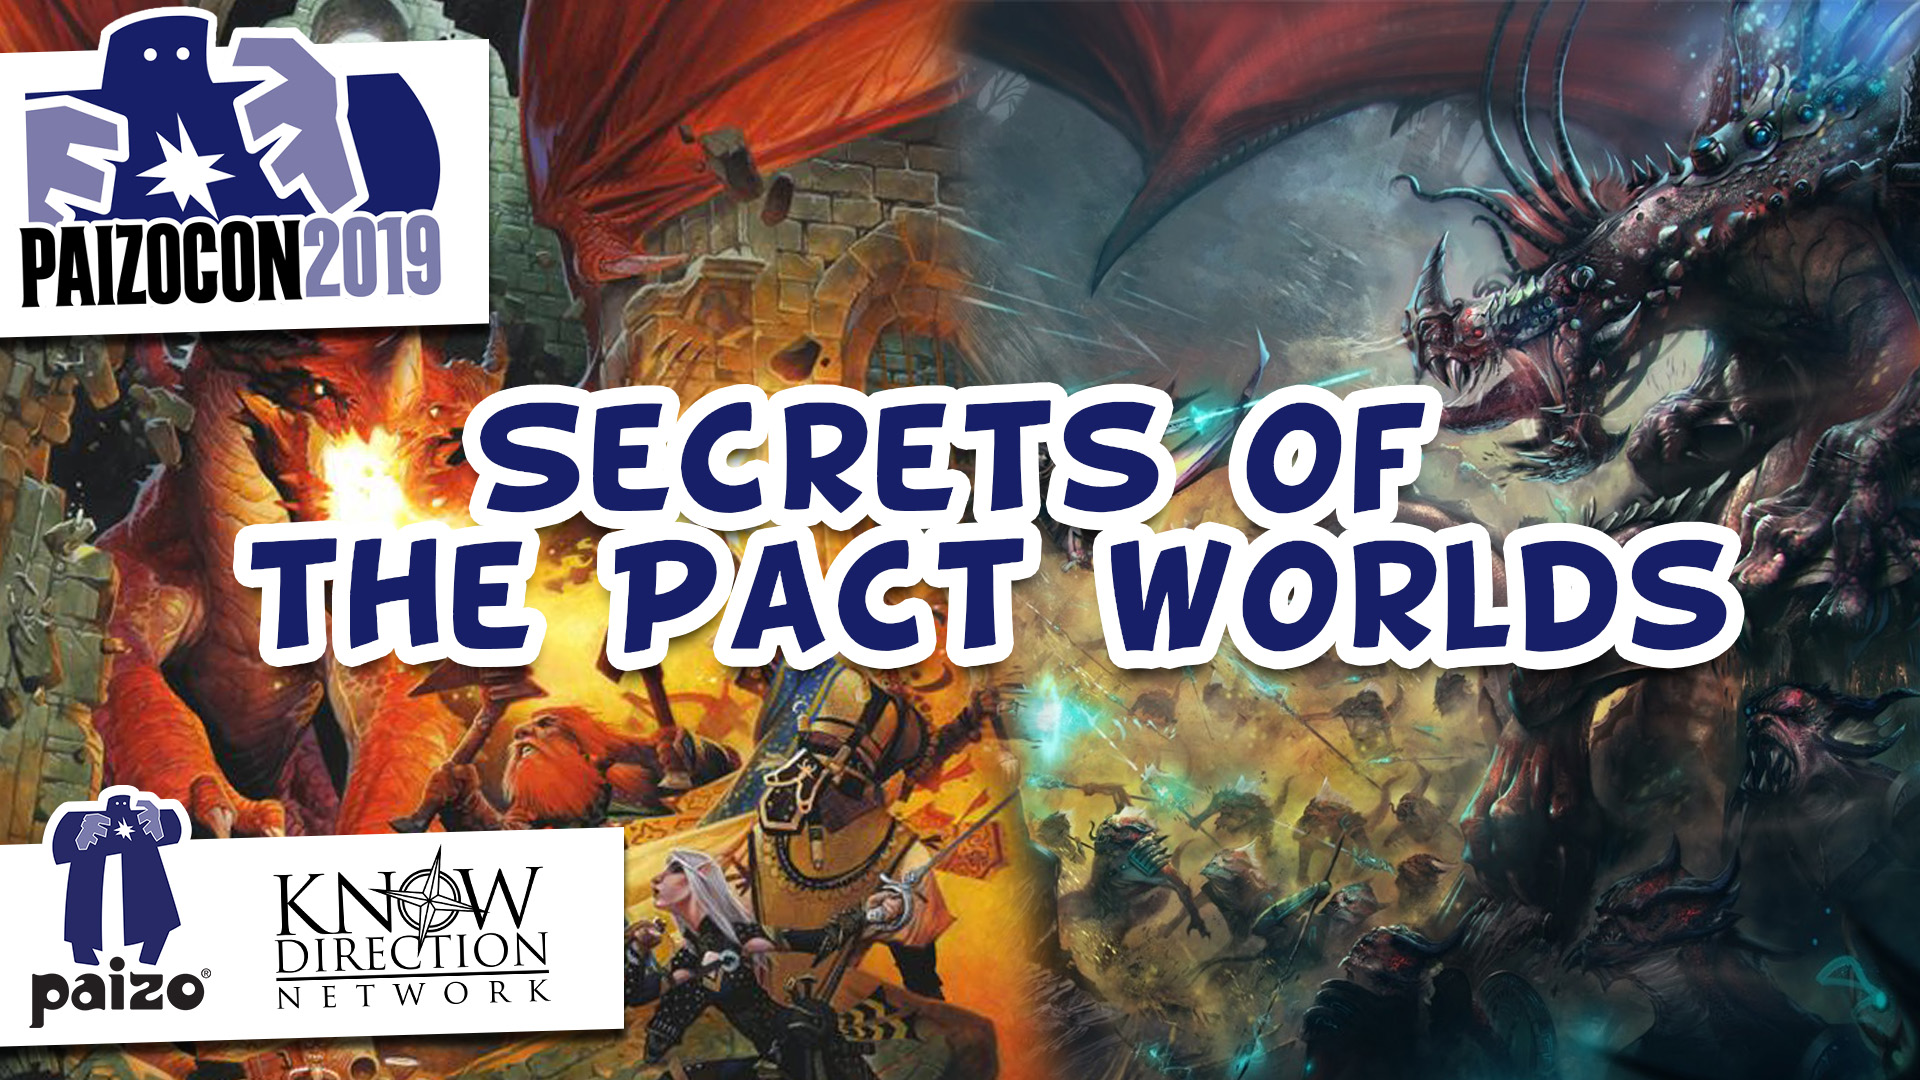 Secrets of the Pact Worlds